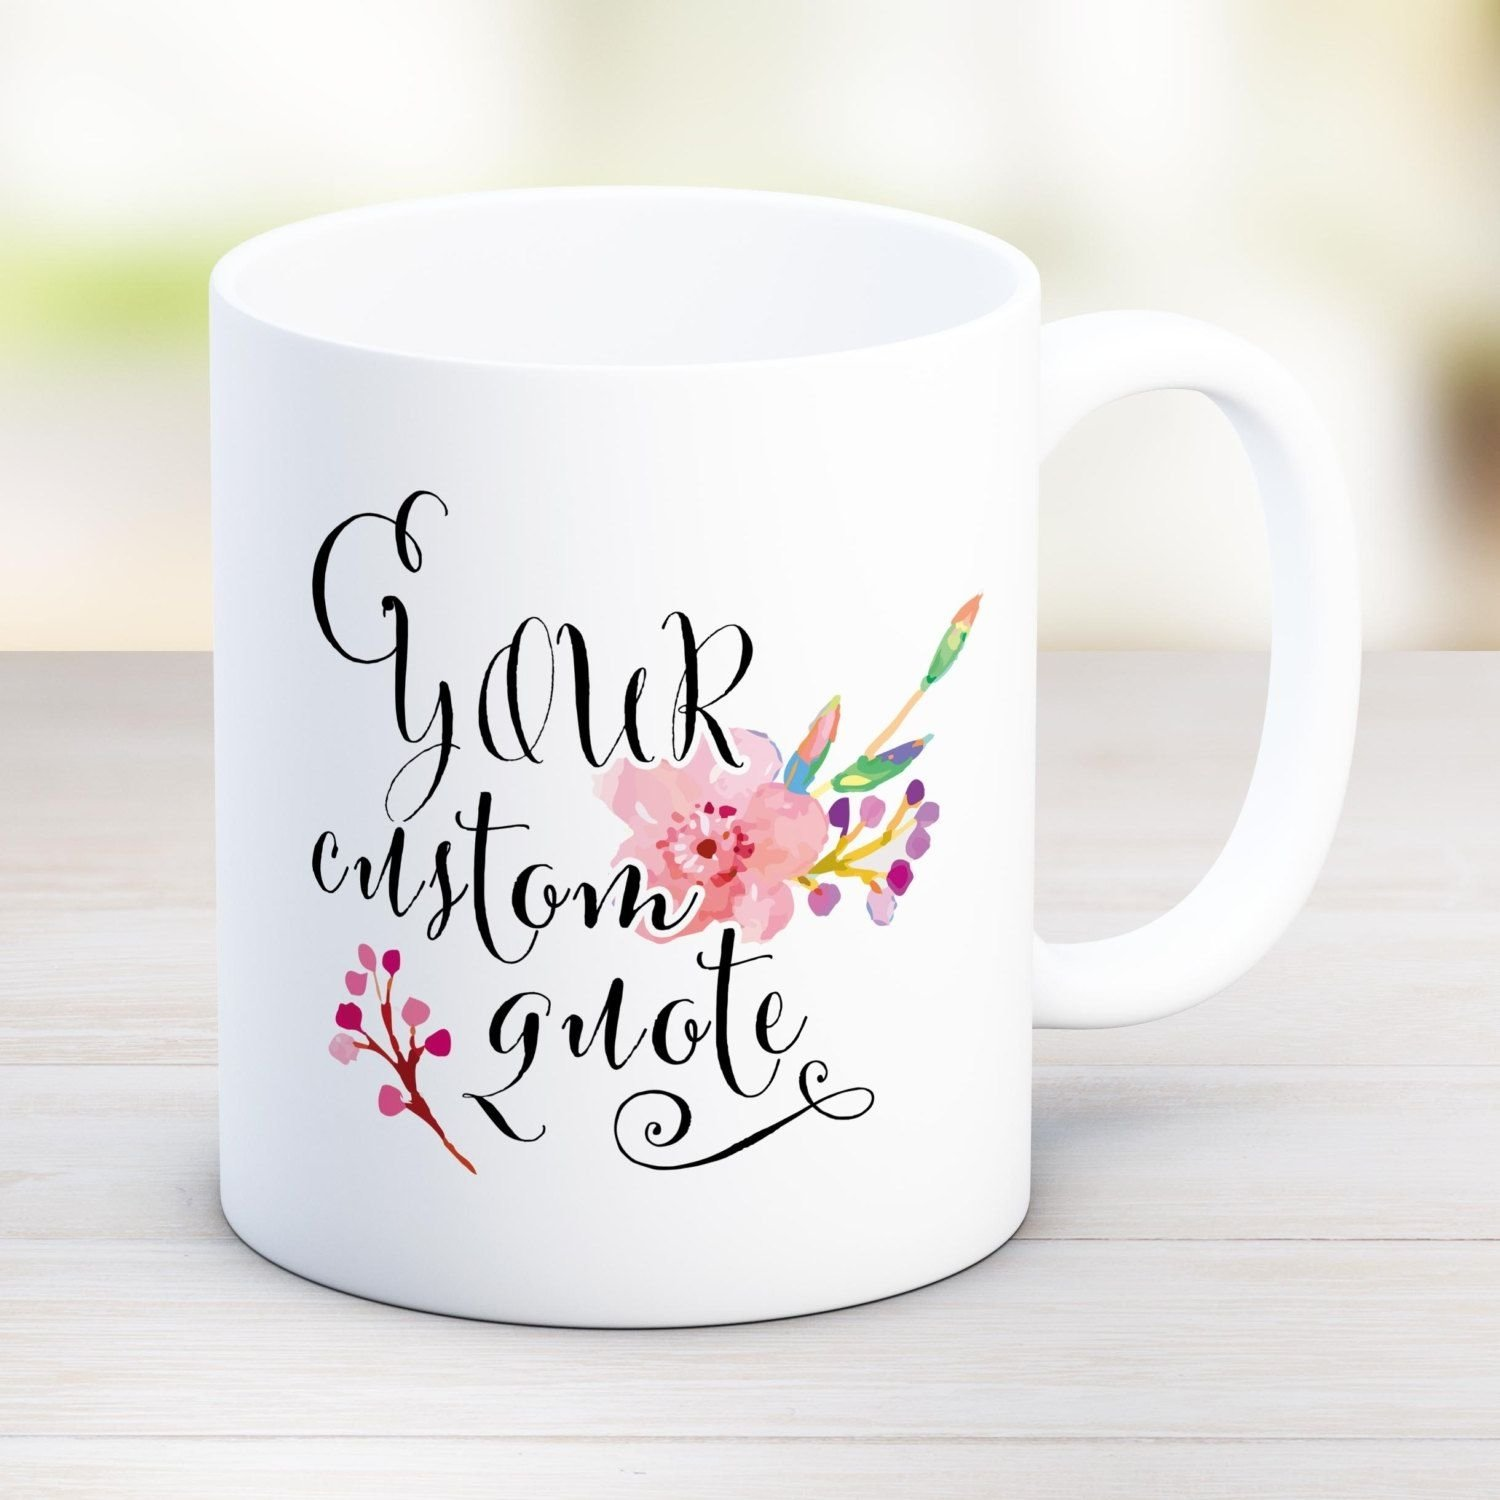 10 Most Recommended Mother In Law Birthday Gift Ideas mother of the groom gift mom mug mom wedding personalized mom 1 2020